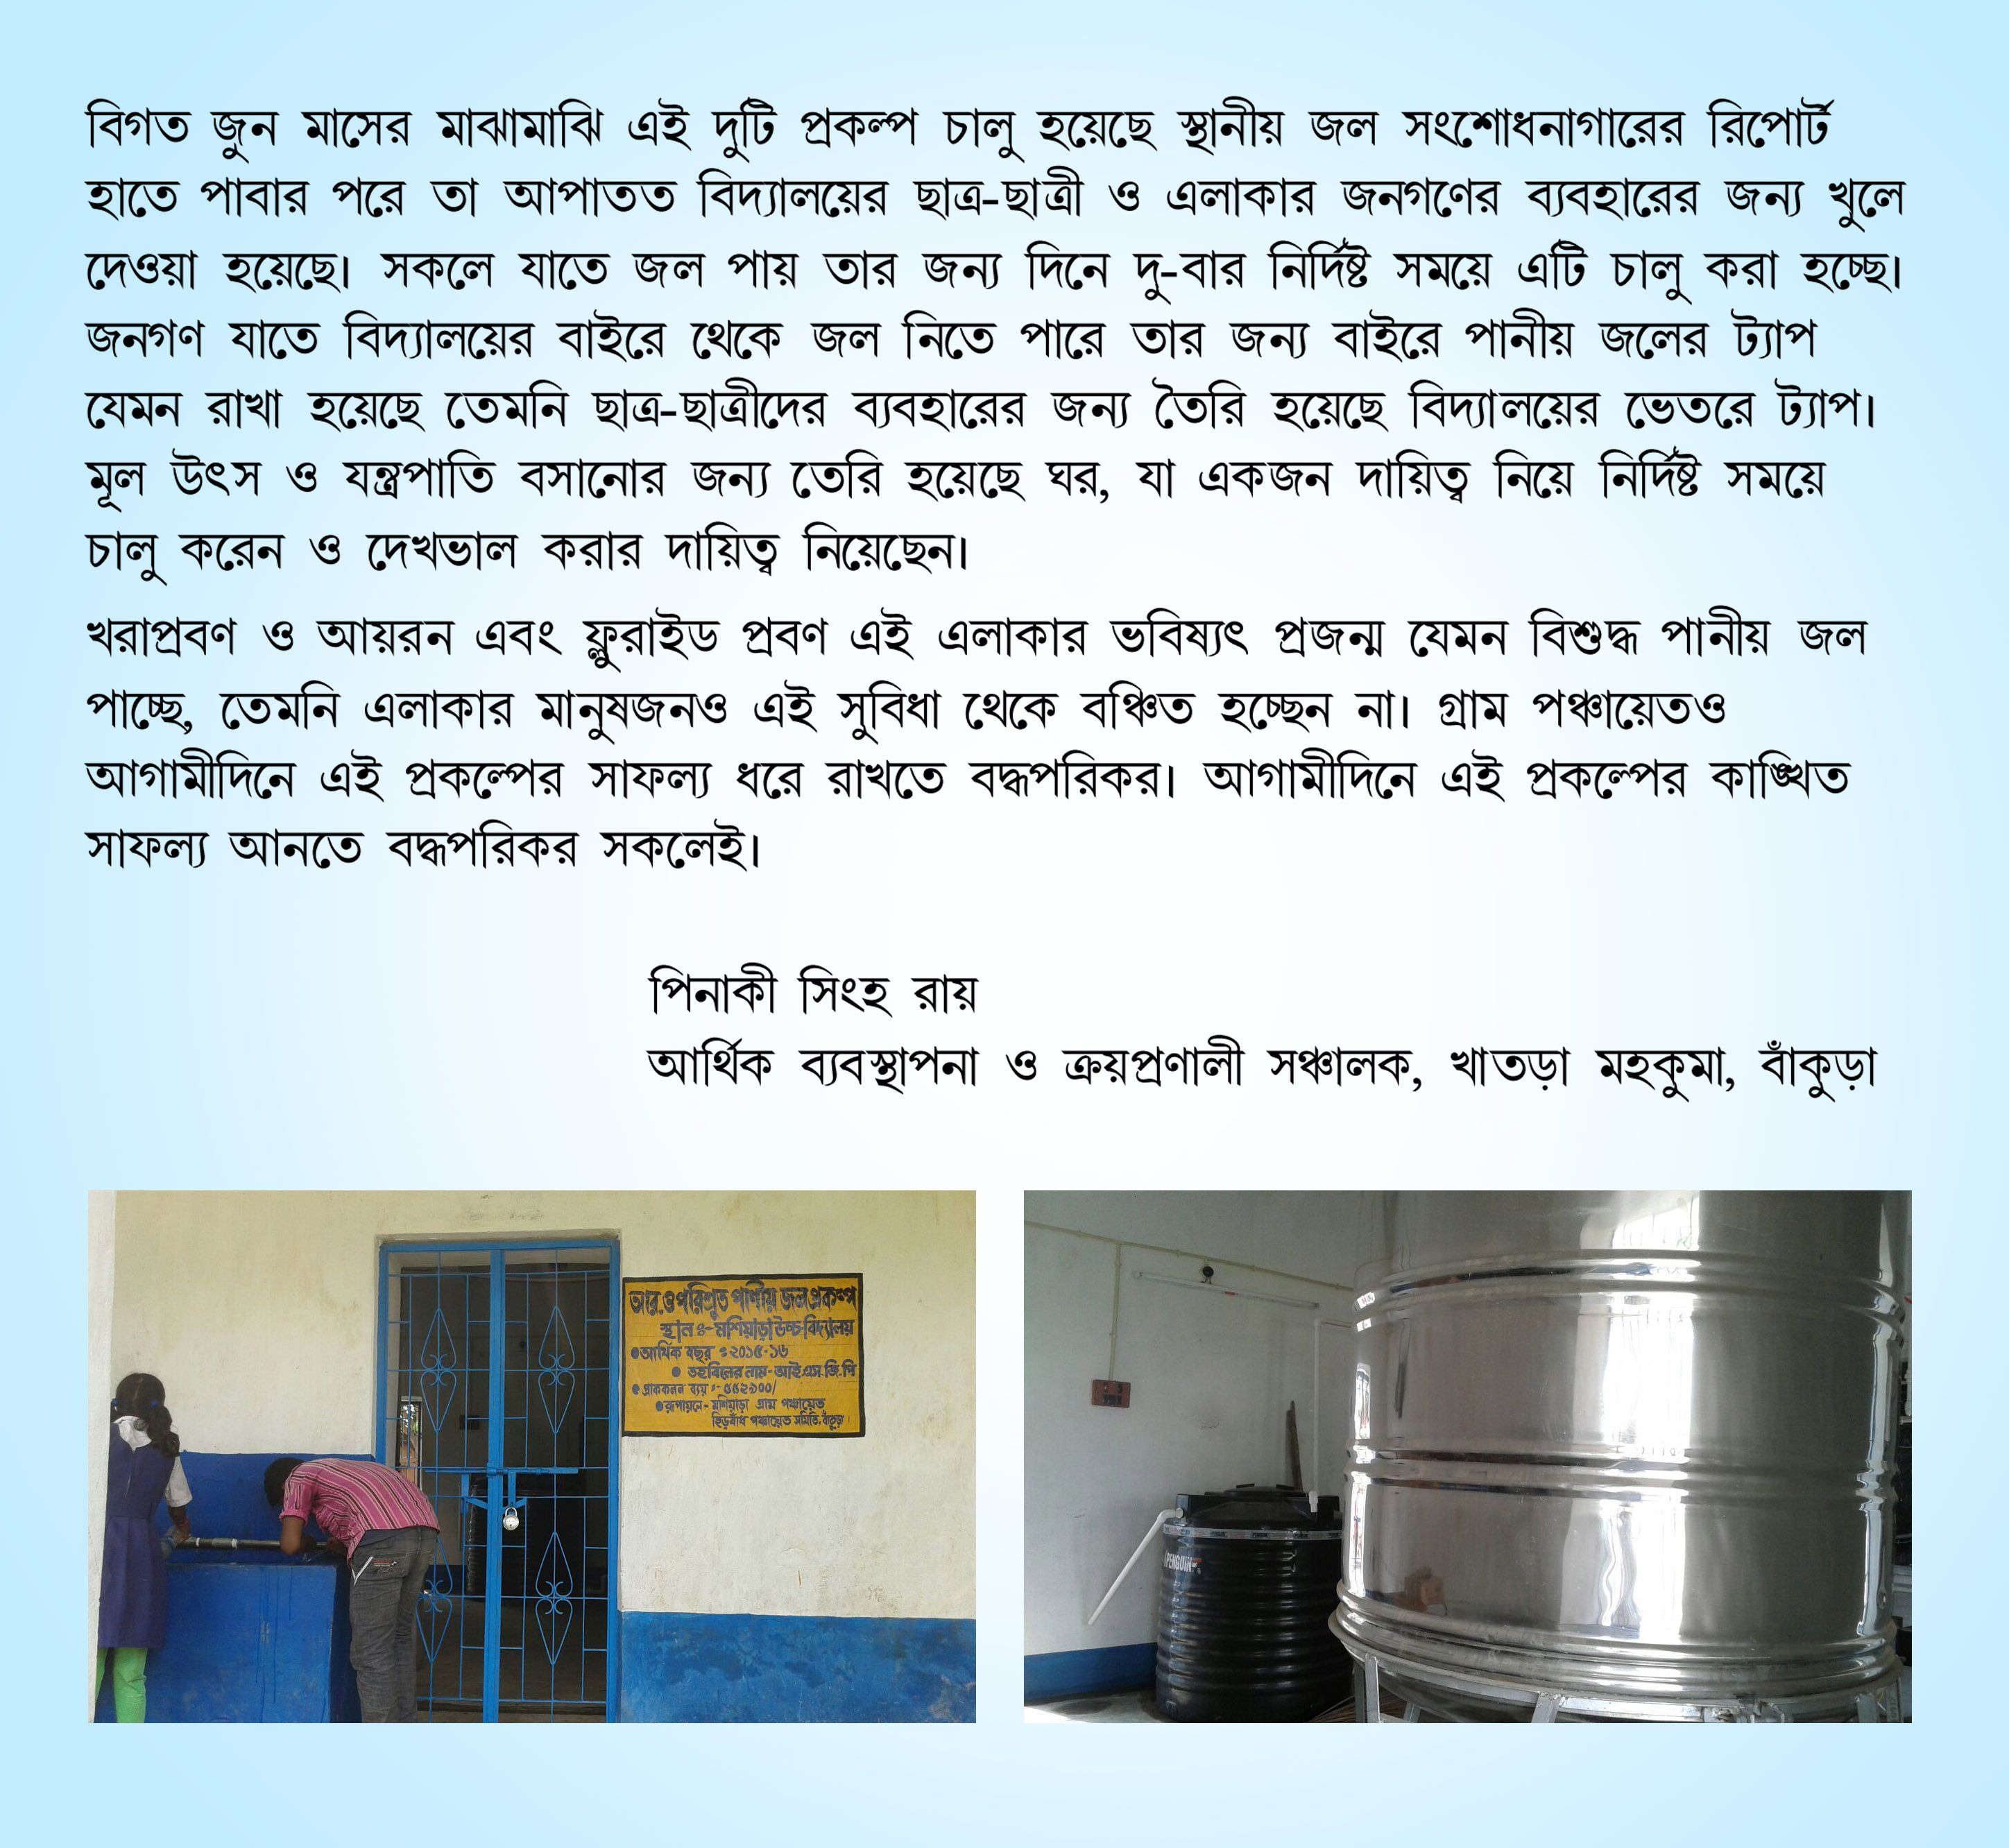 Purifying Drinking Water A Purified Drinking Water Plant Has Been Constructed At Mashiara